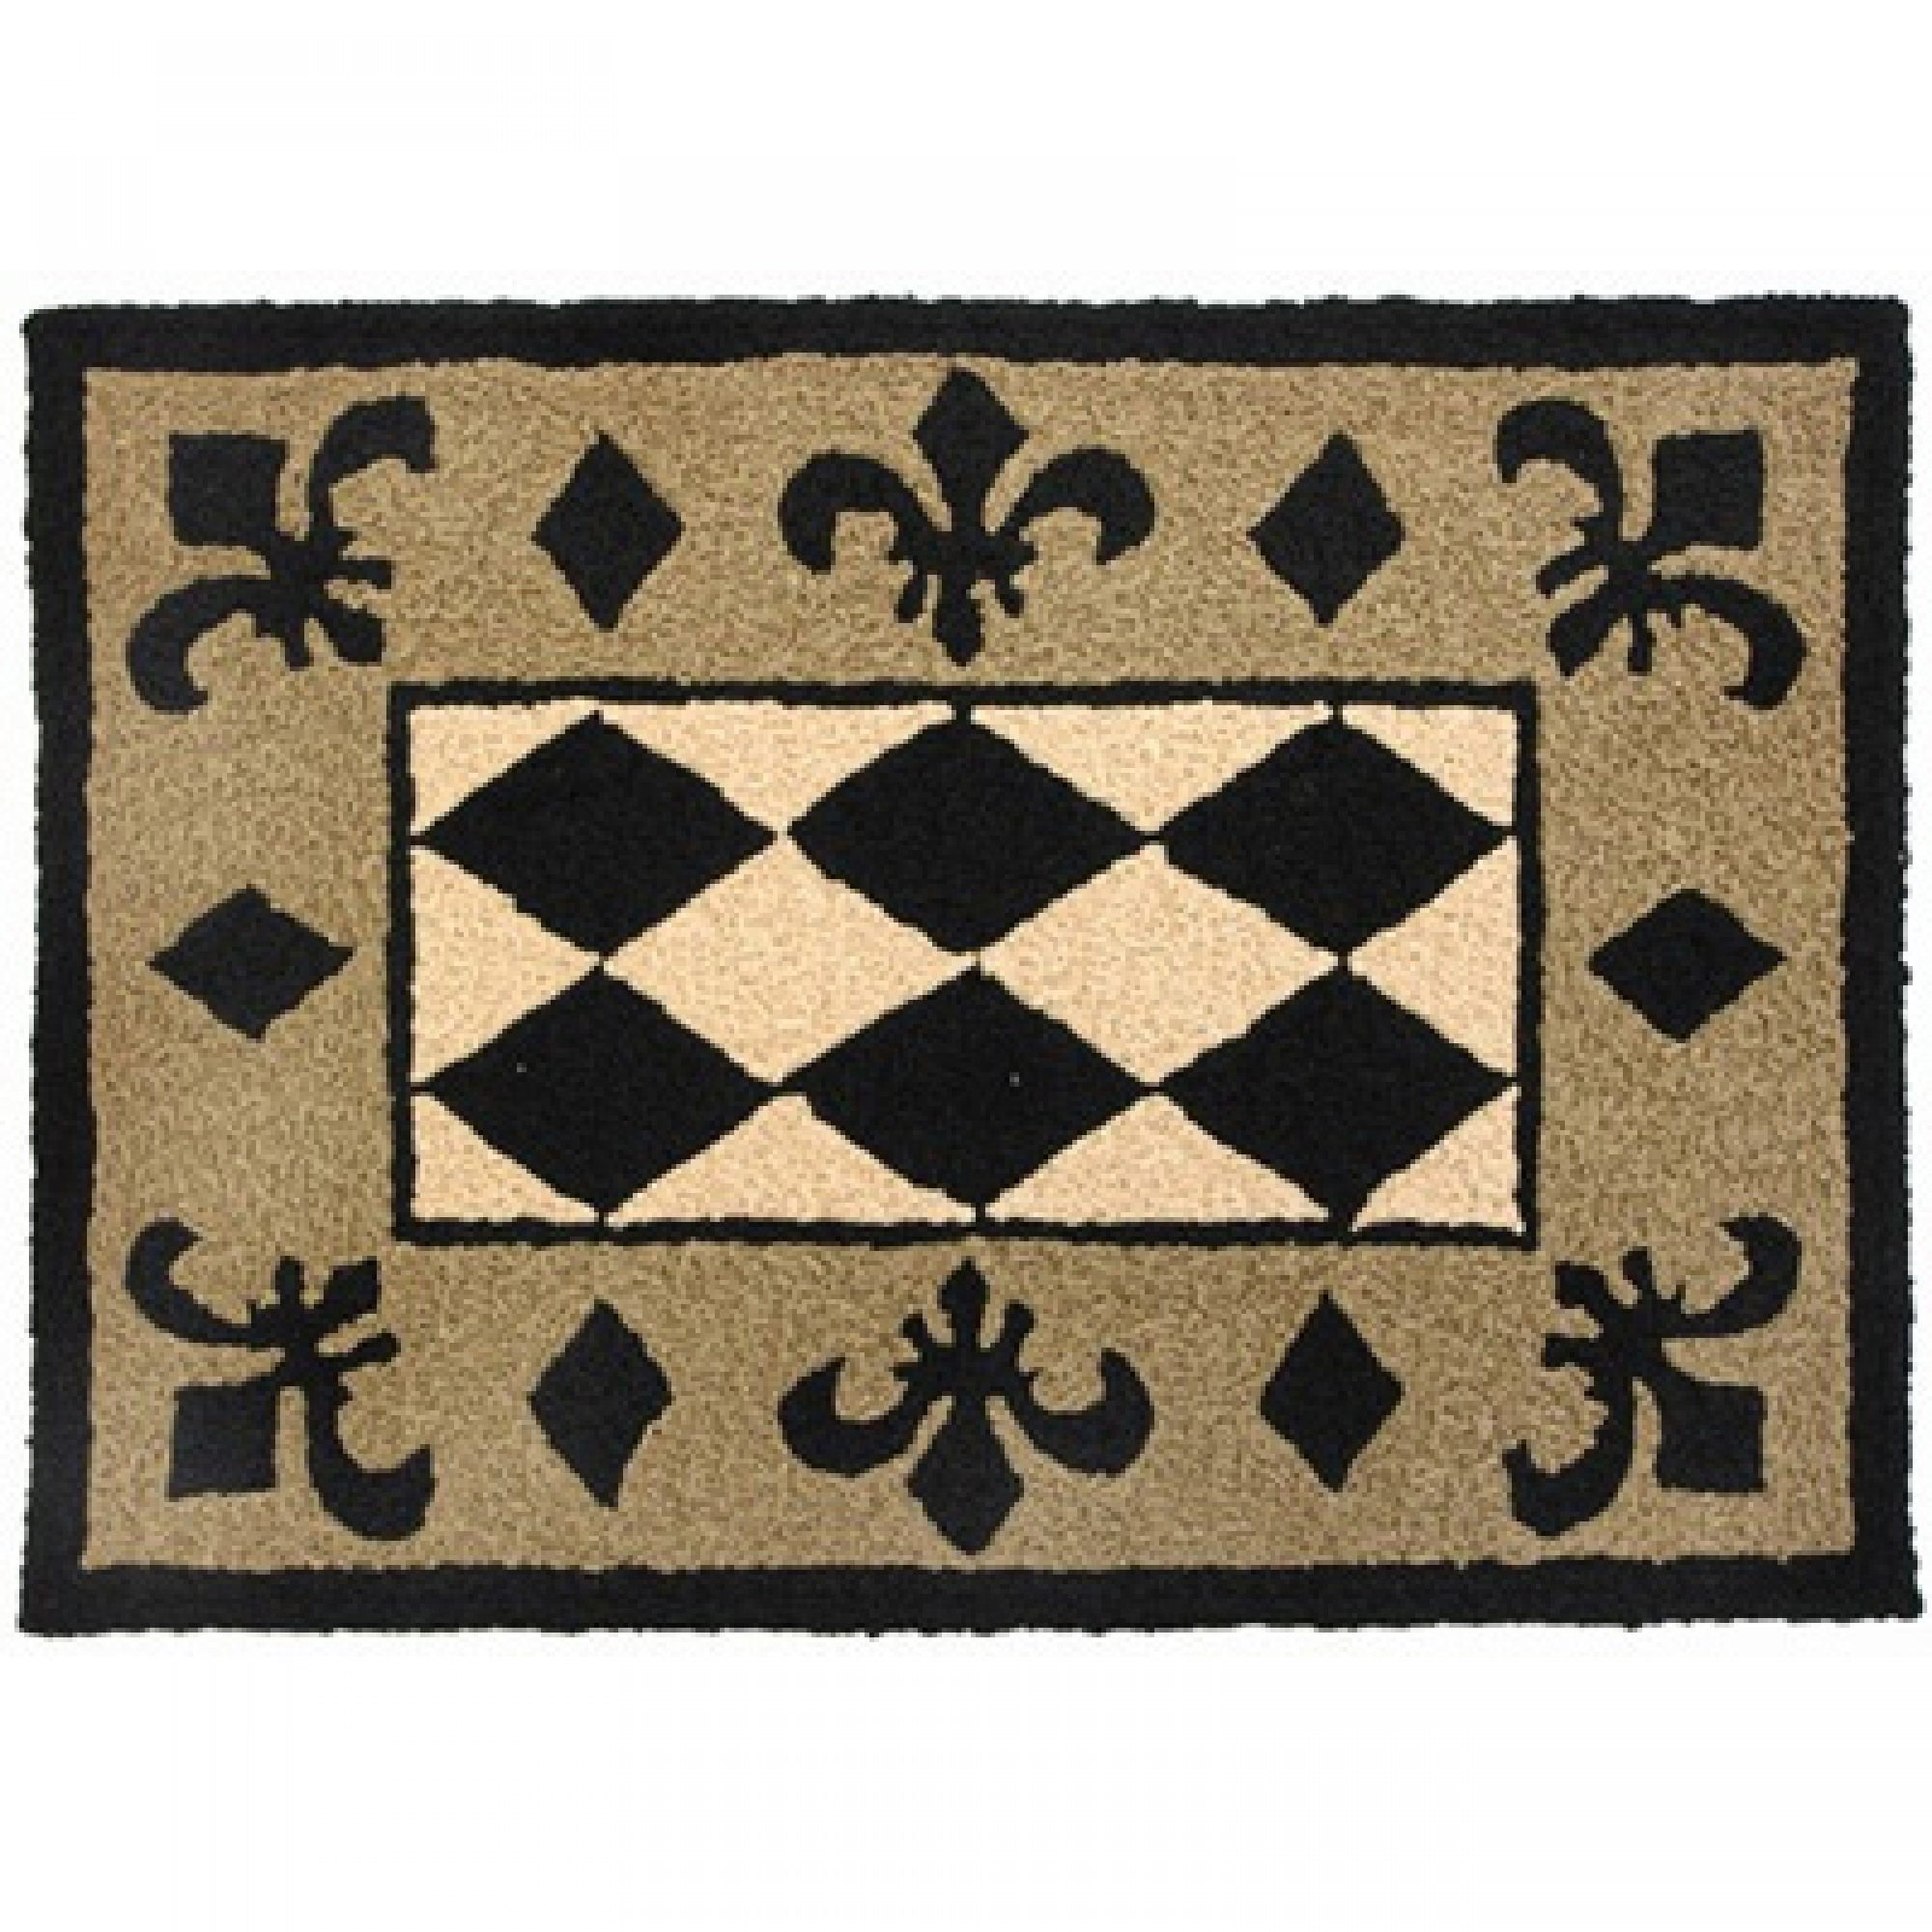 Shop Jellybean Harlequin Black Tan And Beige Outdoor Door Mat For Harlequin Rugs (Image 14 of 15)